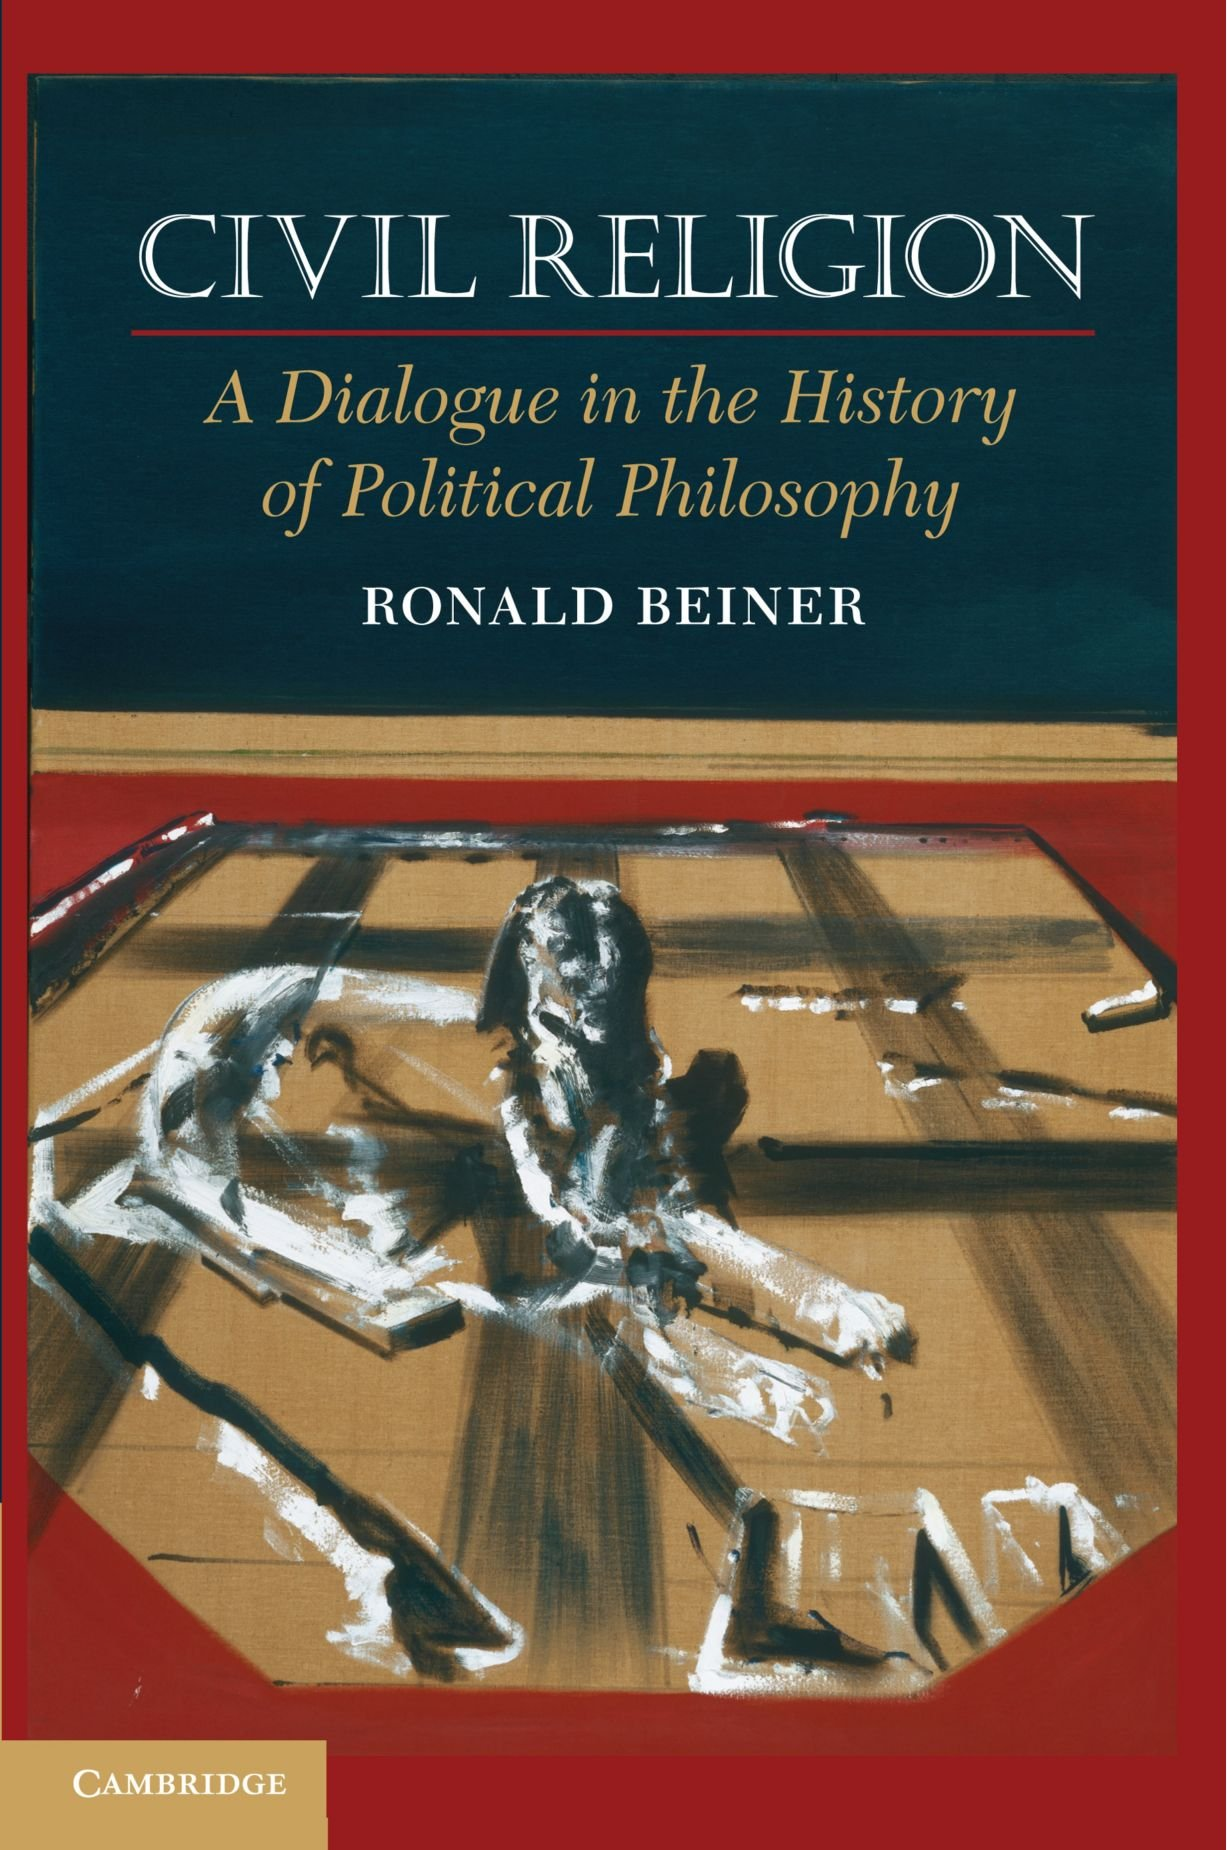 Civil Religion: A Dialogue in the History of Political Philosophy